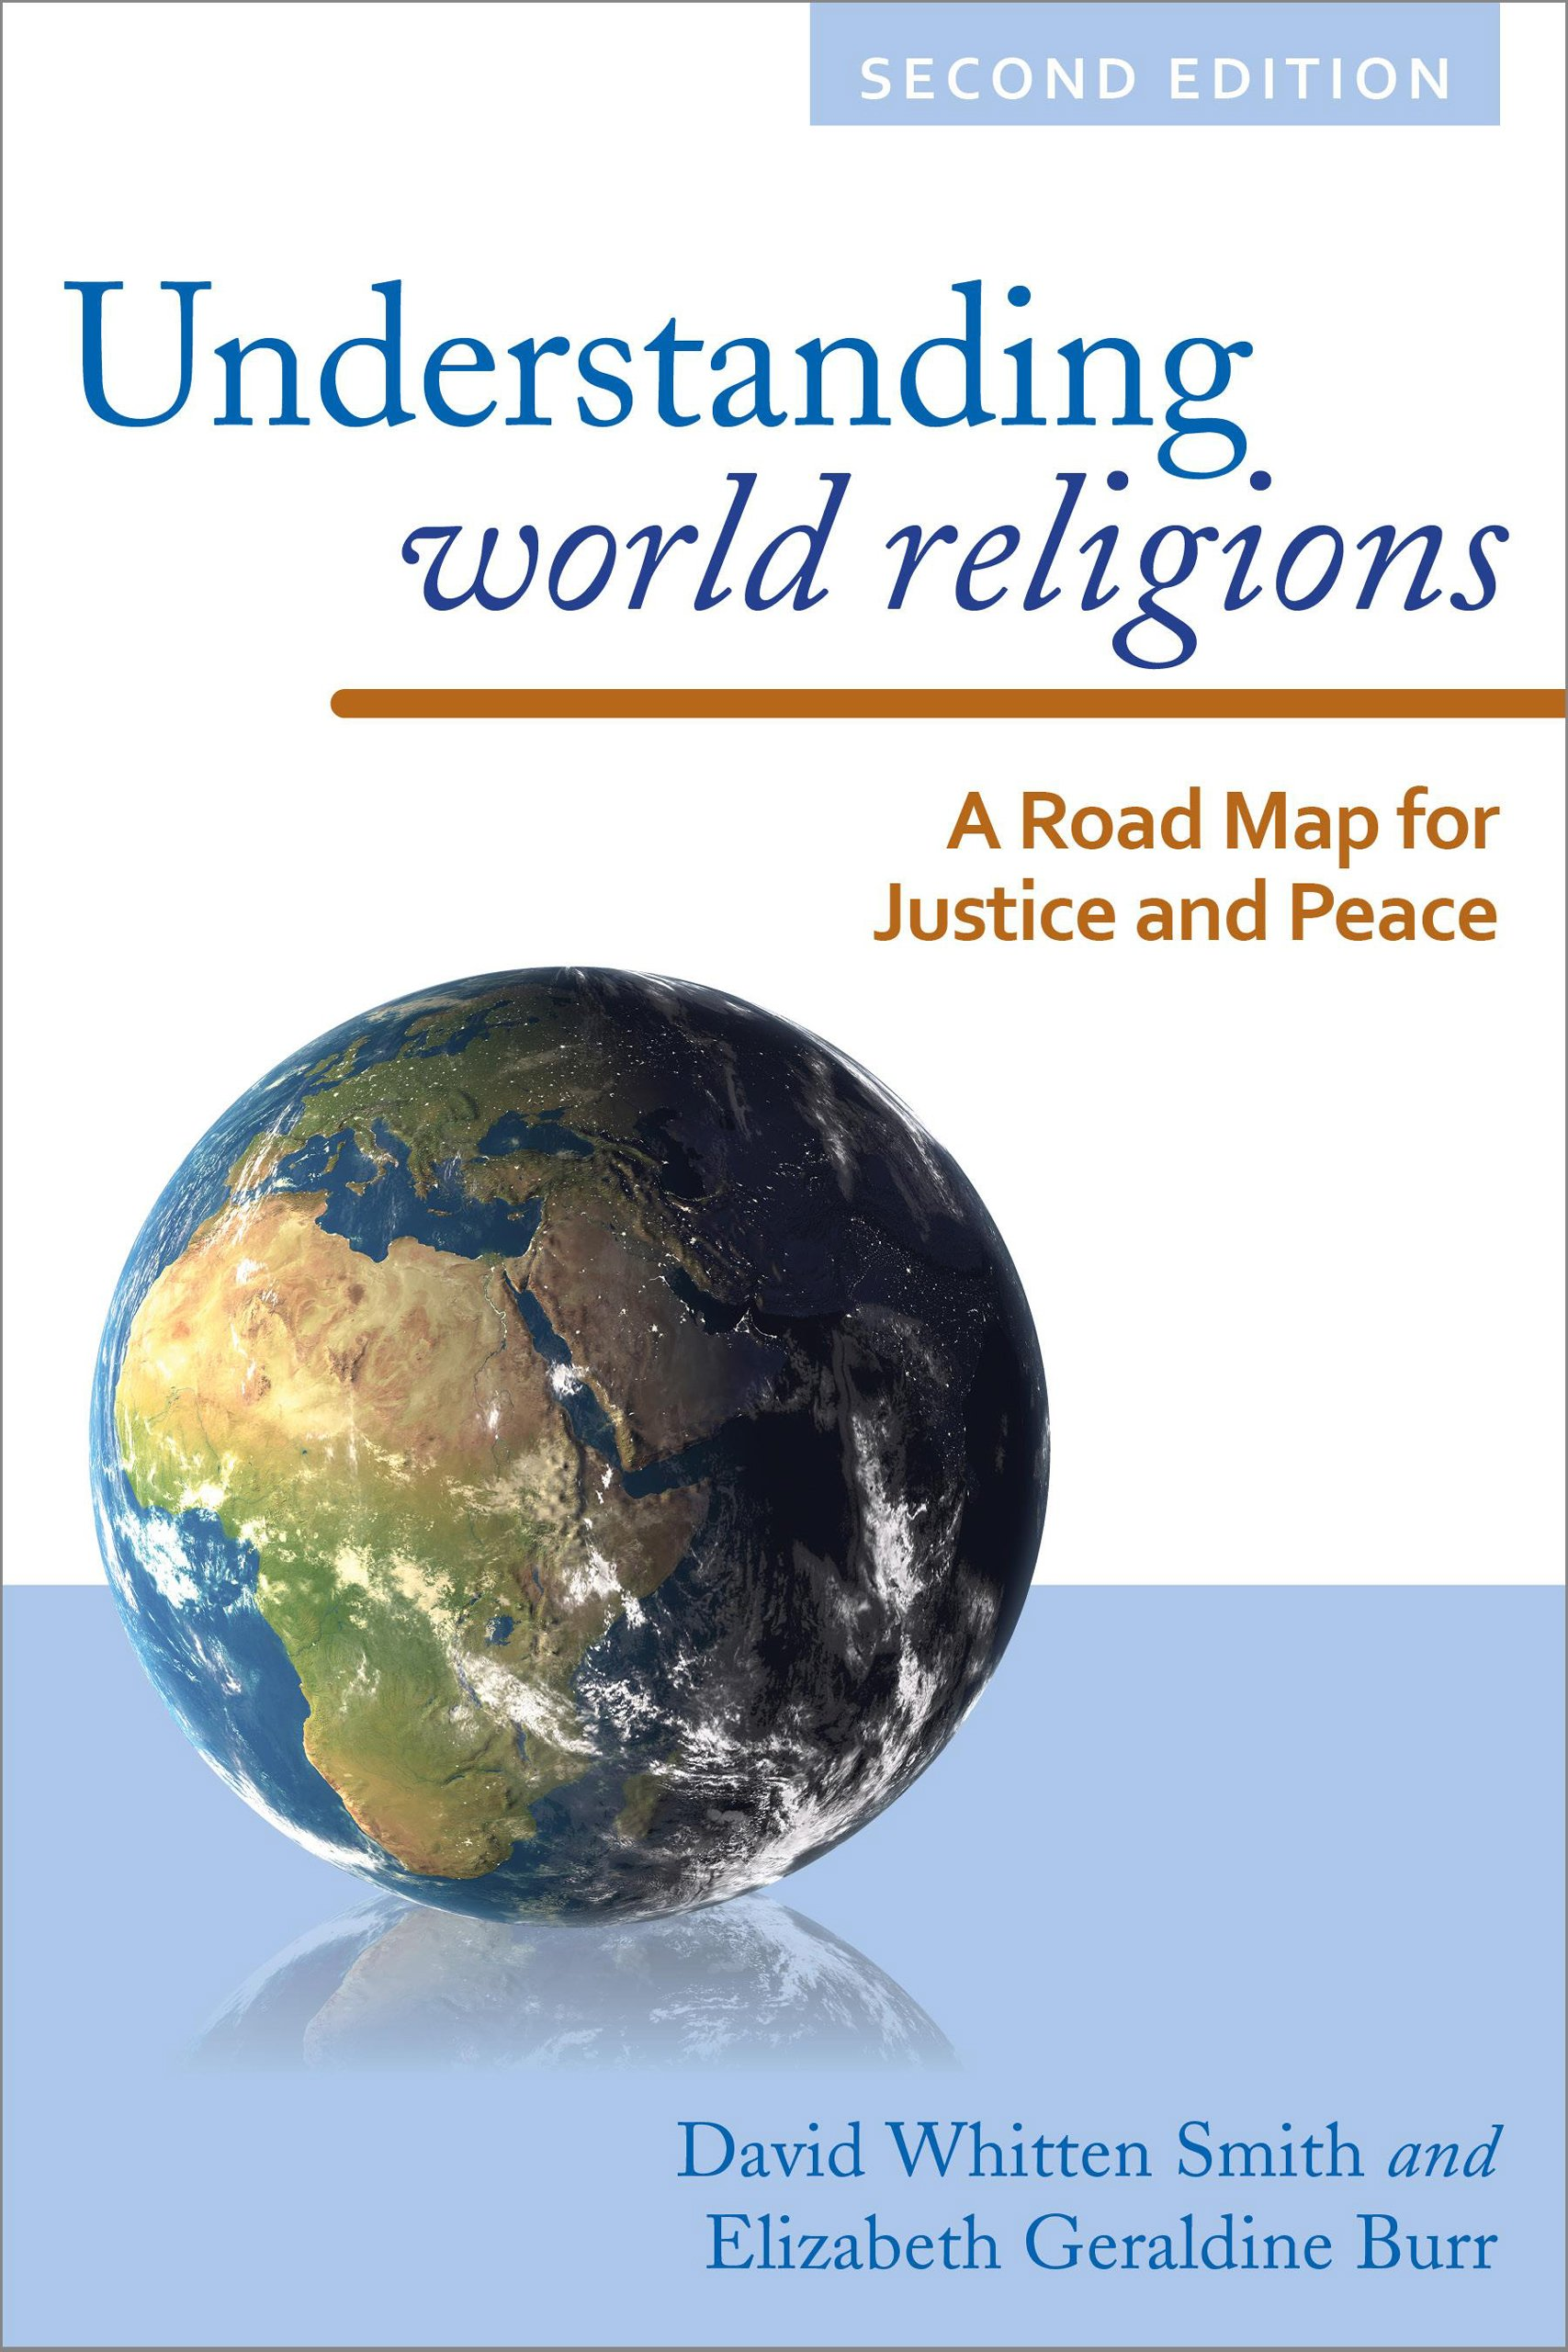 Understanding World Religions: A Road Map for Justice and Peace:  Amazon.co.uk: David Whitten Smith, Elizabeth Geraldine Burr: 9781442226425:  Books